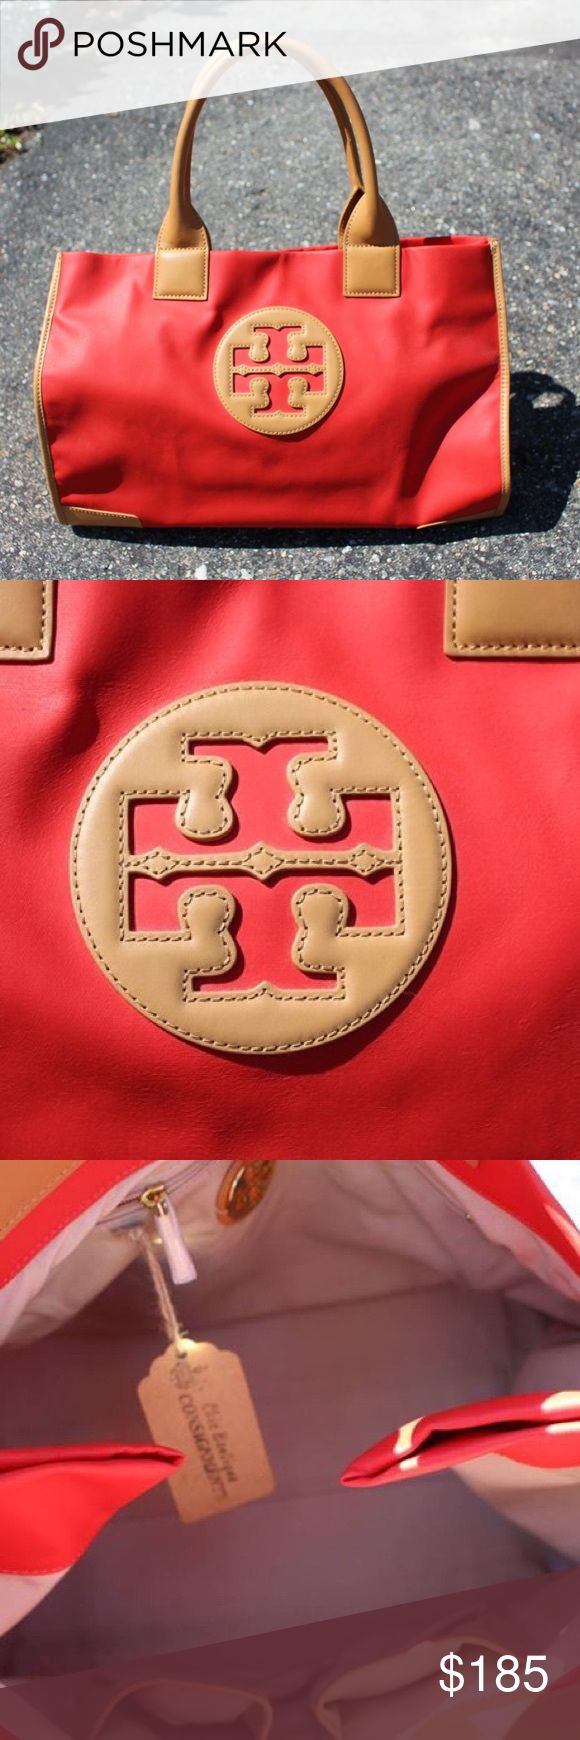 """NWOT Tory Burch Emma Tote Fold. Pack. Go! The new Ella Packable Tote folds flat and snaps shut Designed to tuck easily into another bag or a suitcase, simply collapse it in an accordion style, fold the sides in and snap them together Inner zipped pocket and two open pockets Flat leather handles with 11"""" drop Height: 12.15"""" x Length: 15.74"""" x Depth: 5.98"""" - price firm no trades! Shop for less at www.chicboutiqueconsignments.com Tory Burch Bags Totes"""